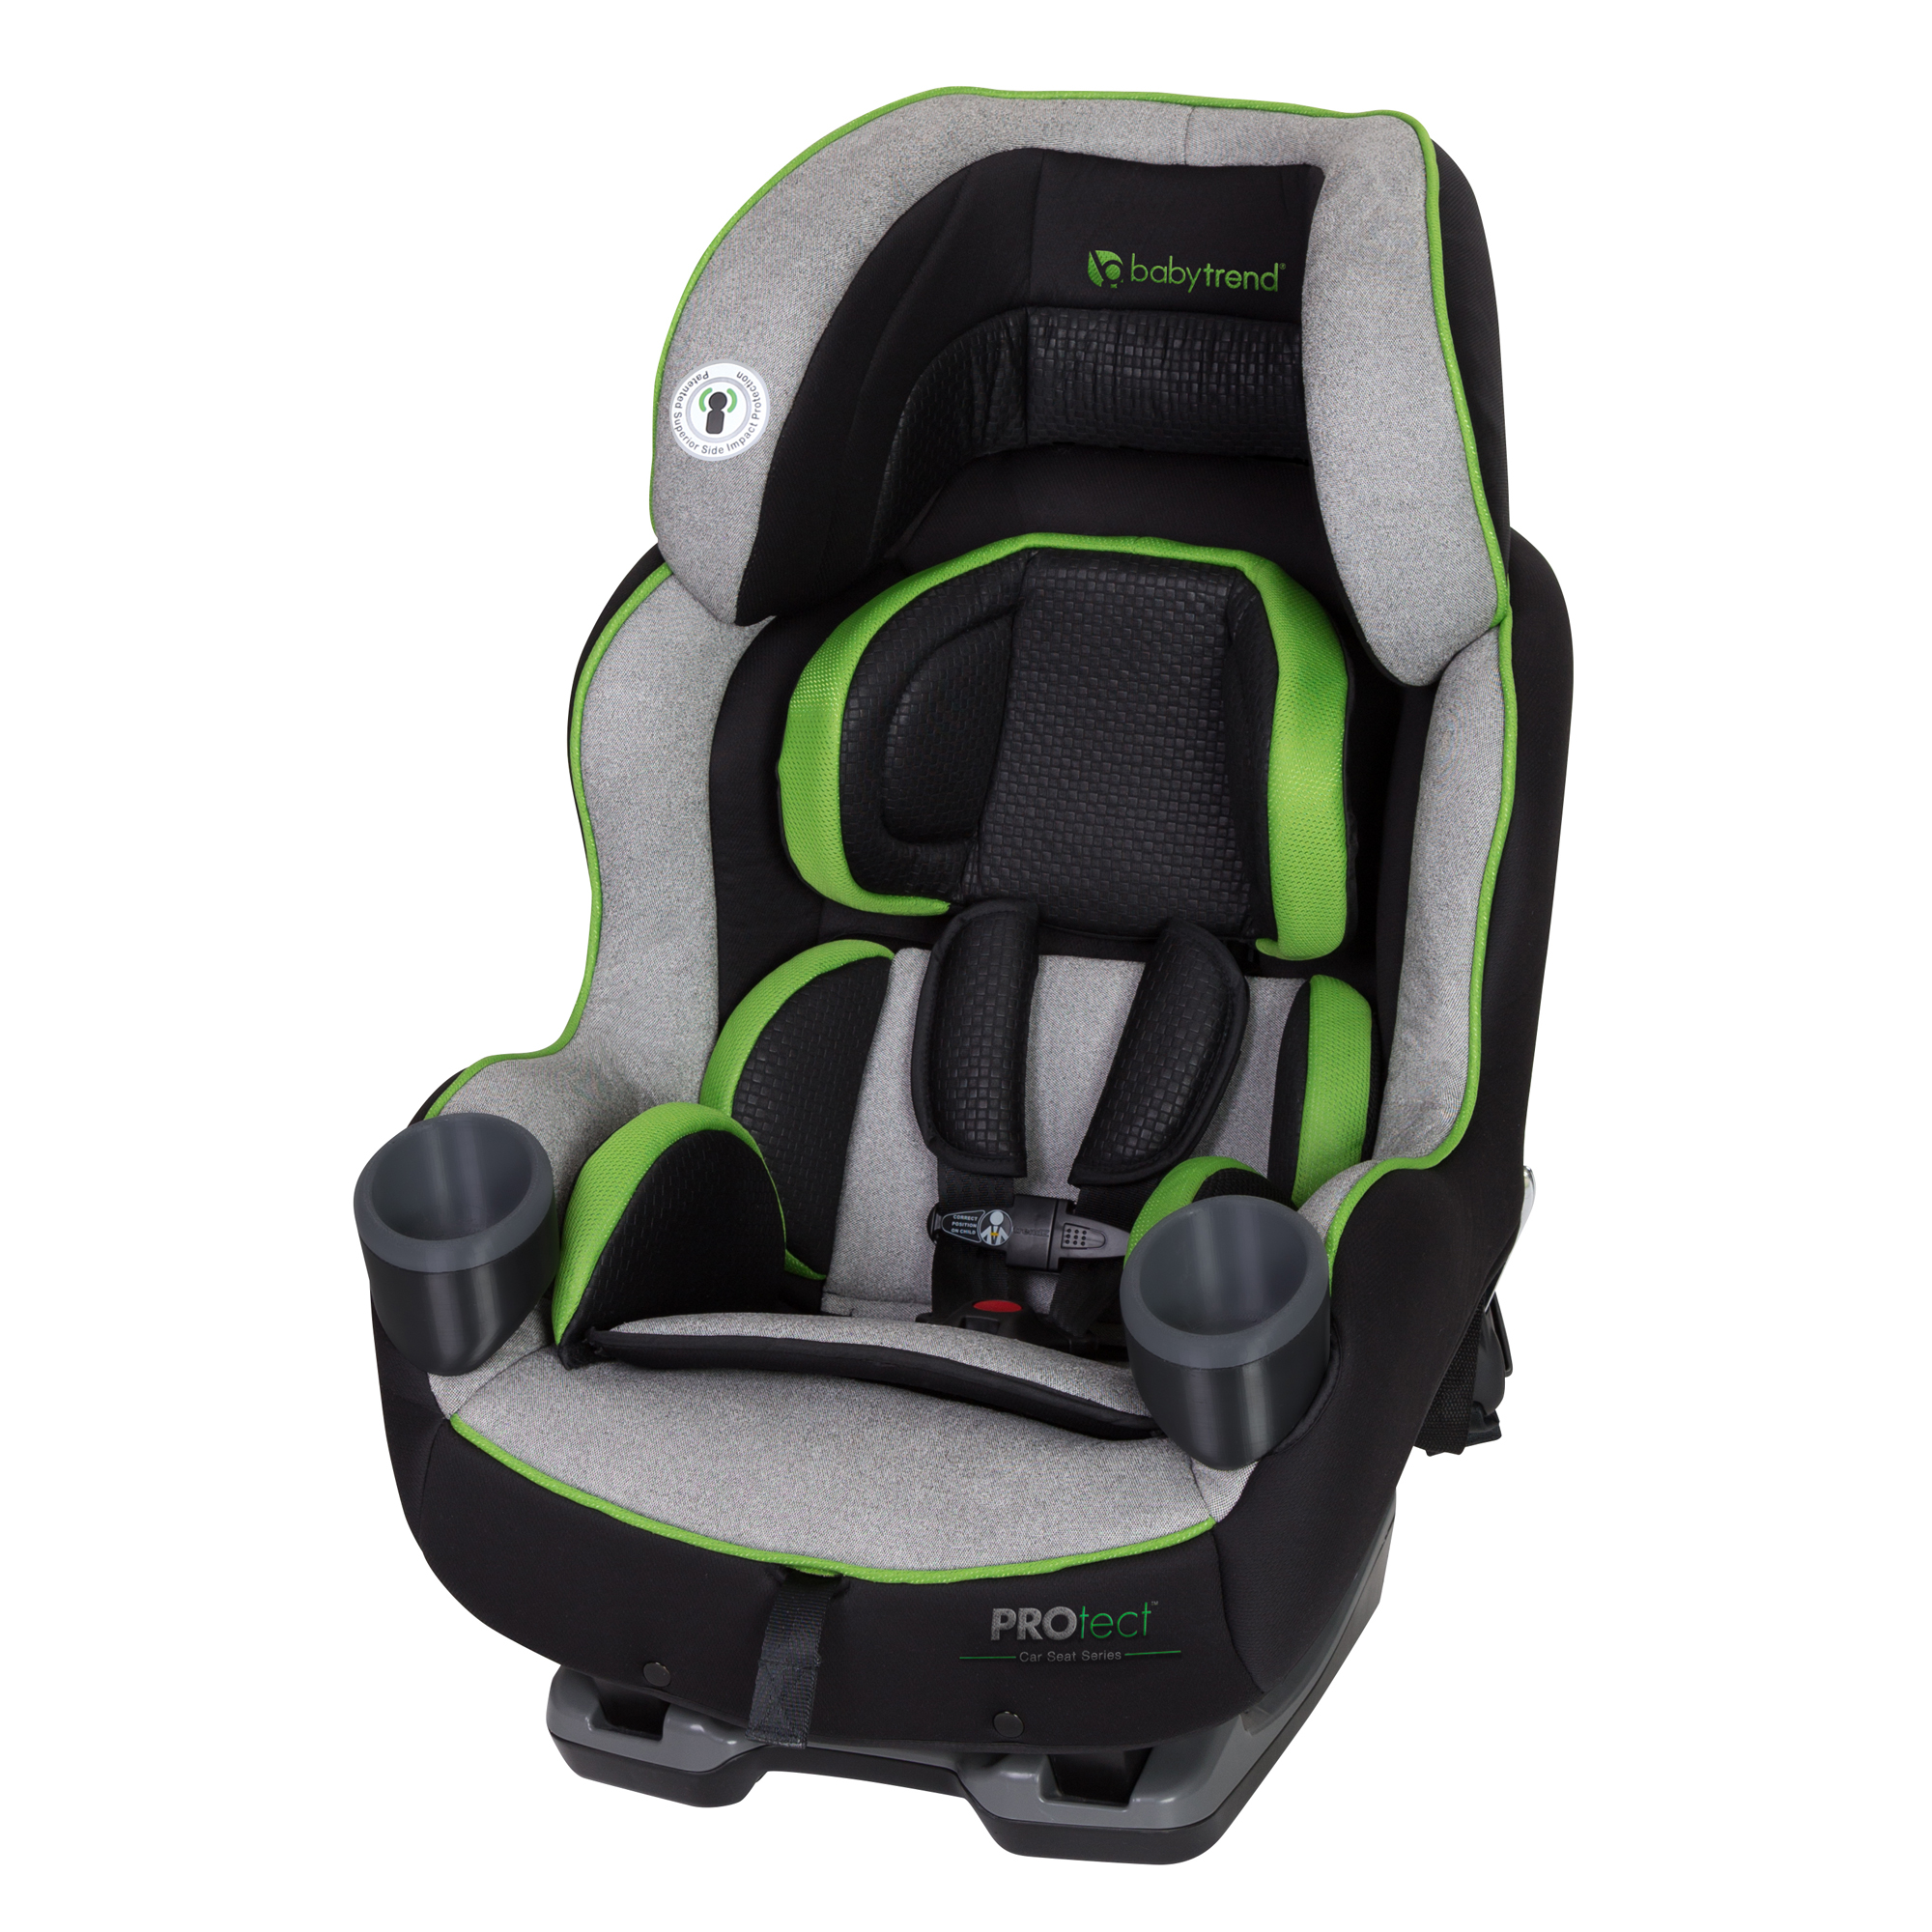 Baby Trend Rear Facing Car Seat